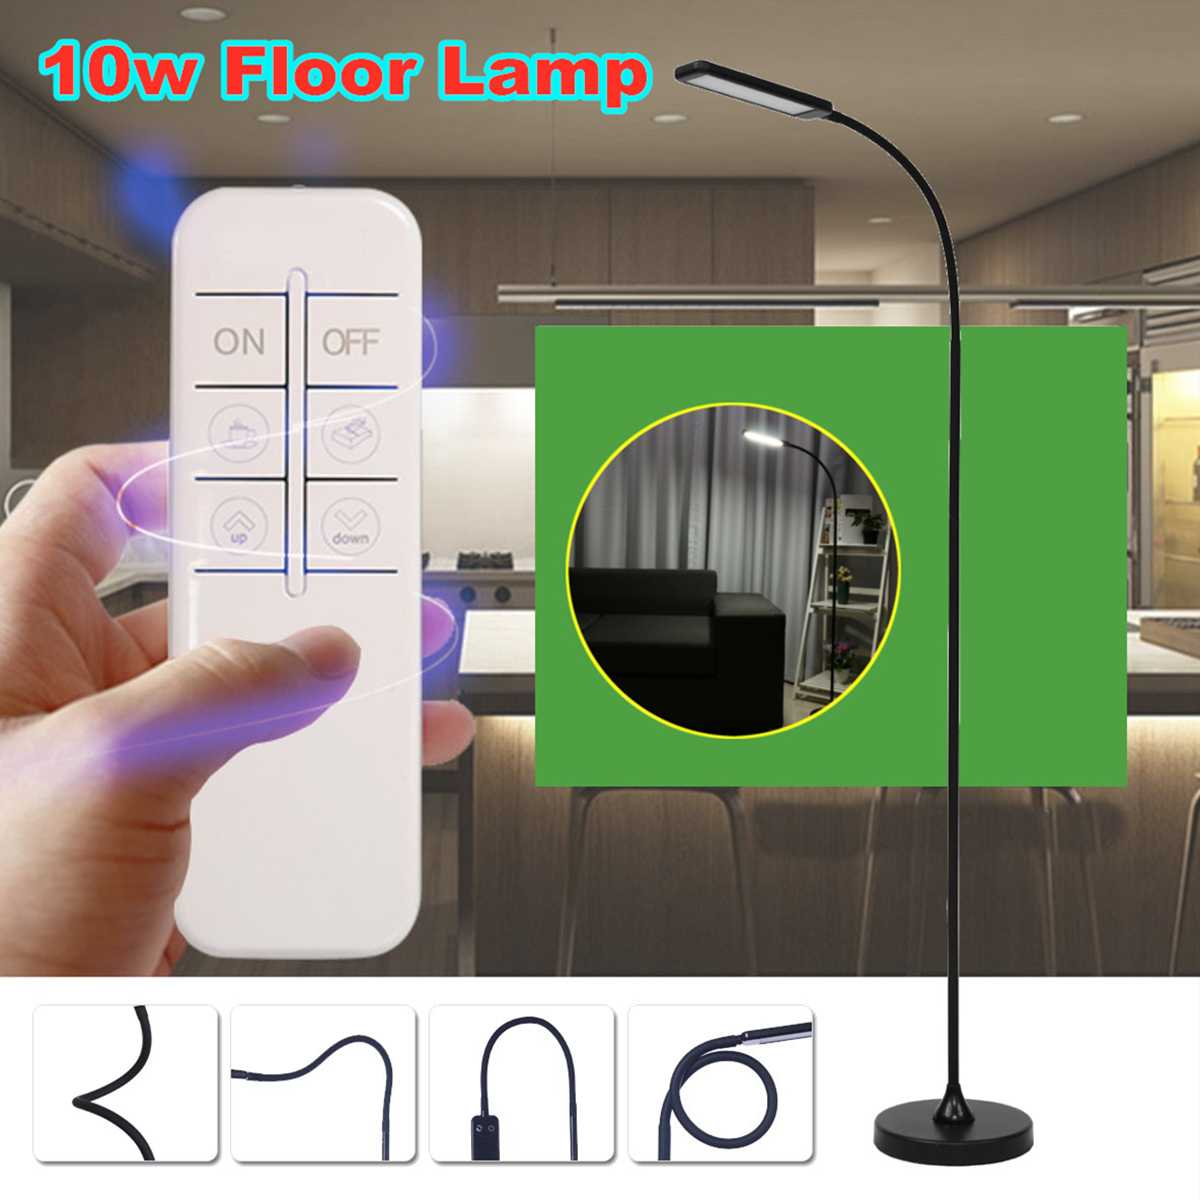 Dimmable LED Floor Lamp Light Remote Control Reading Night Lamp Adjustable Home Office Decoration Indoor Lighting FixtureDimmable LED Floor Lamp Light Remote Control Reading Night Lamp Adjustable Home Office Decoration Indoor Lighting Fixture